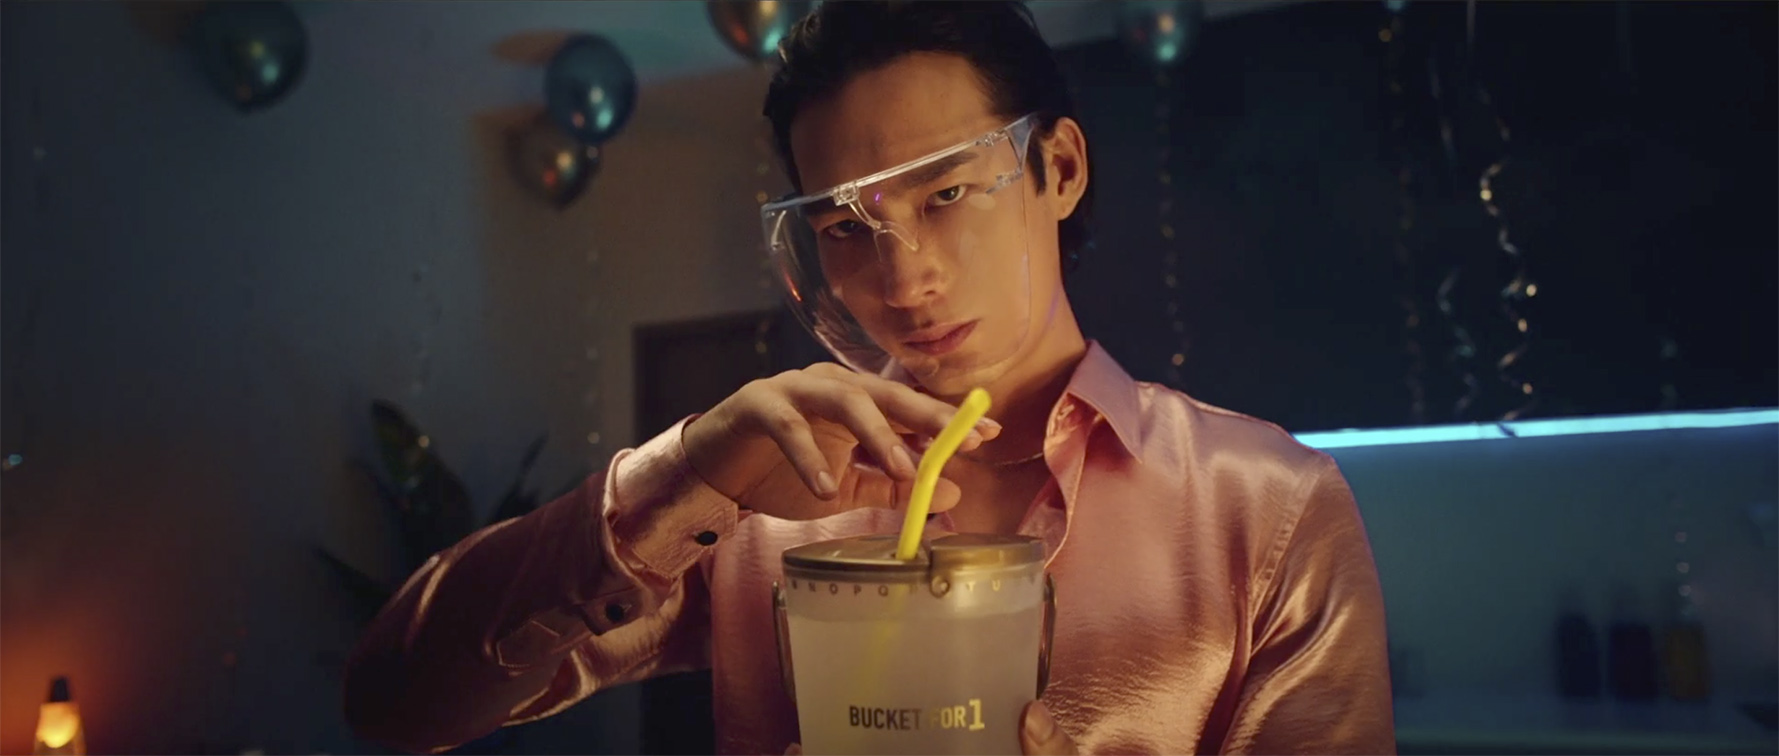 SangSom Thai Rum encourages Thais to not be divided except by their 'bucket for one' via humorous new Sour Bangkok campaign